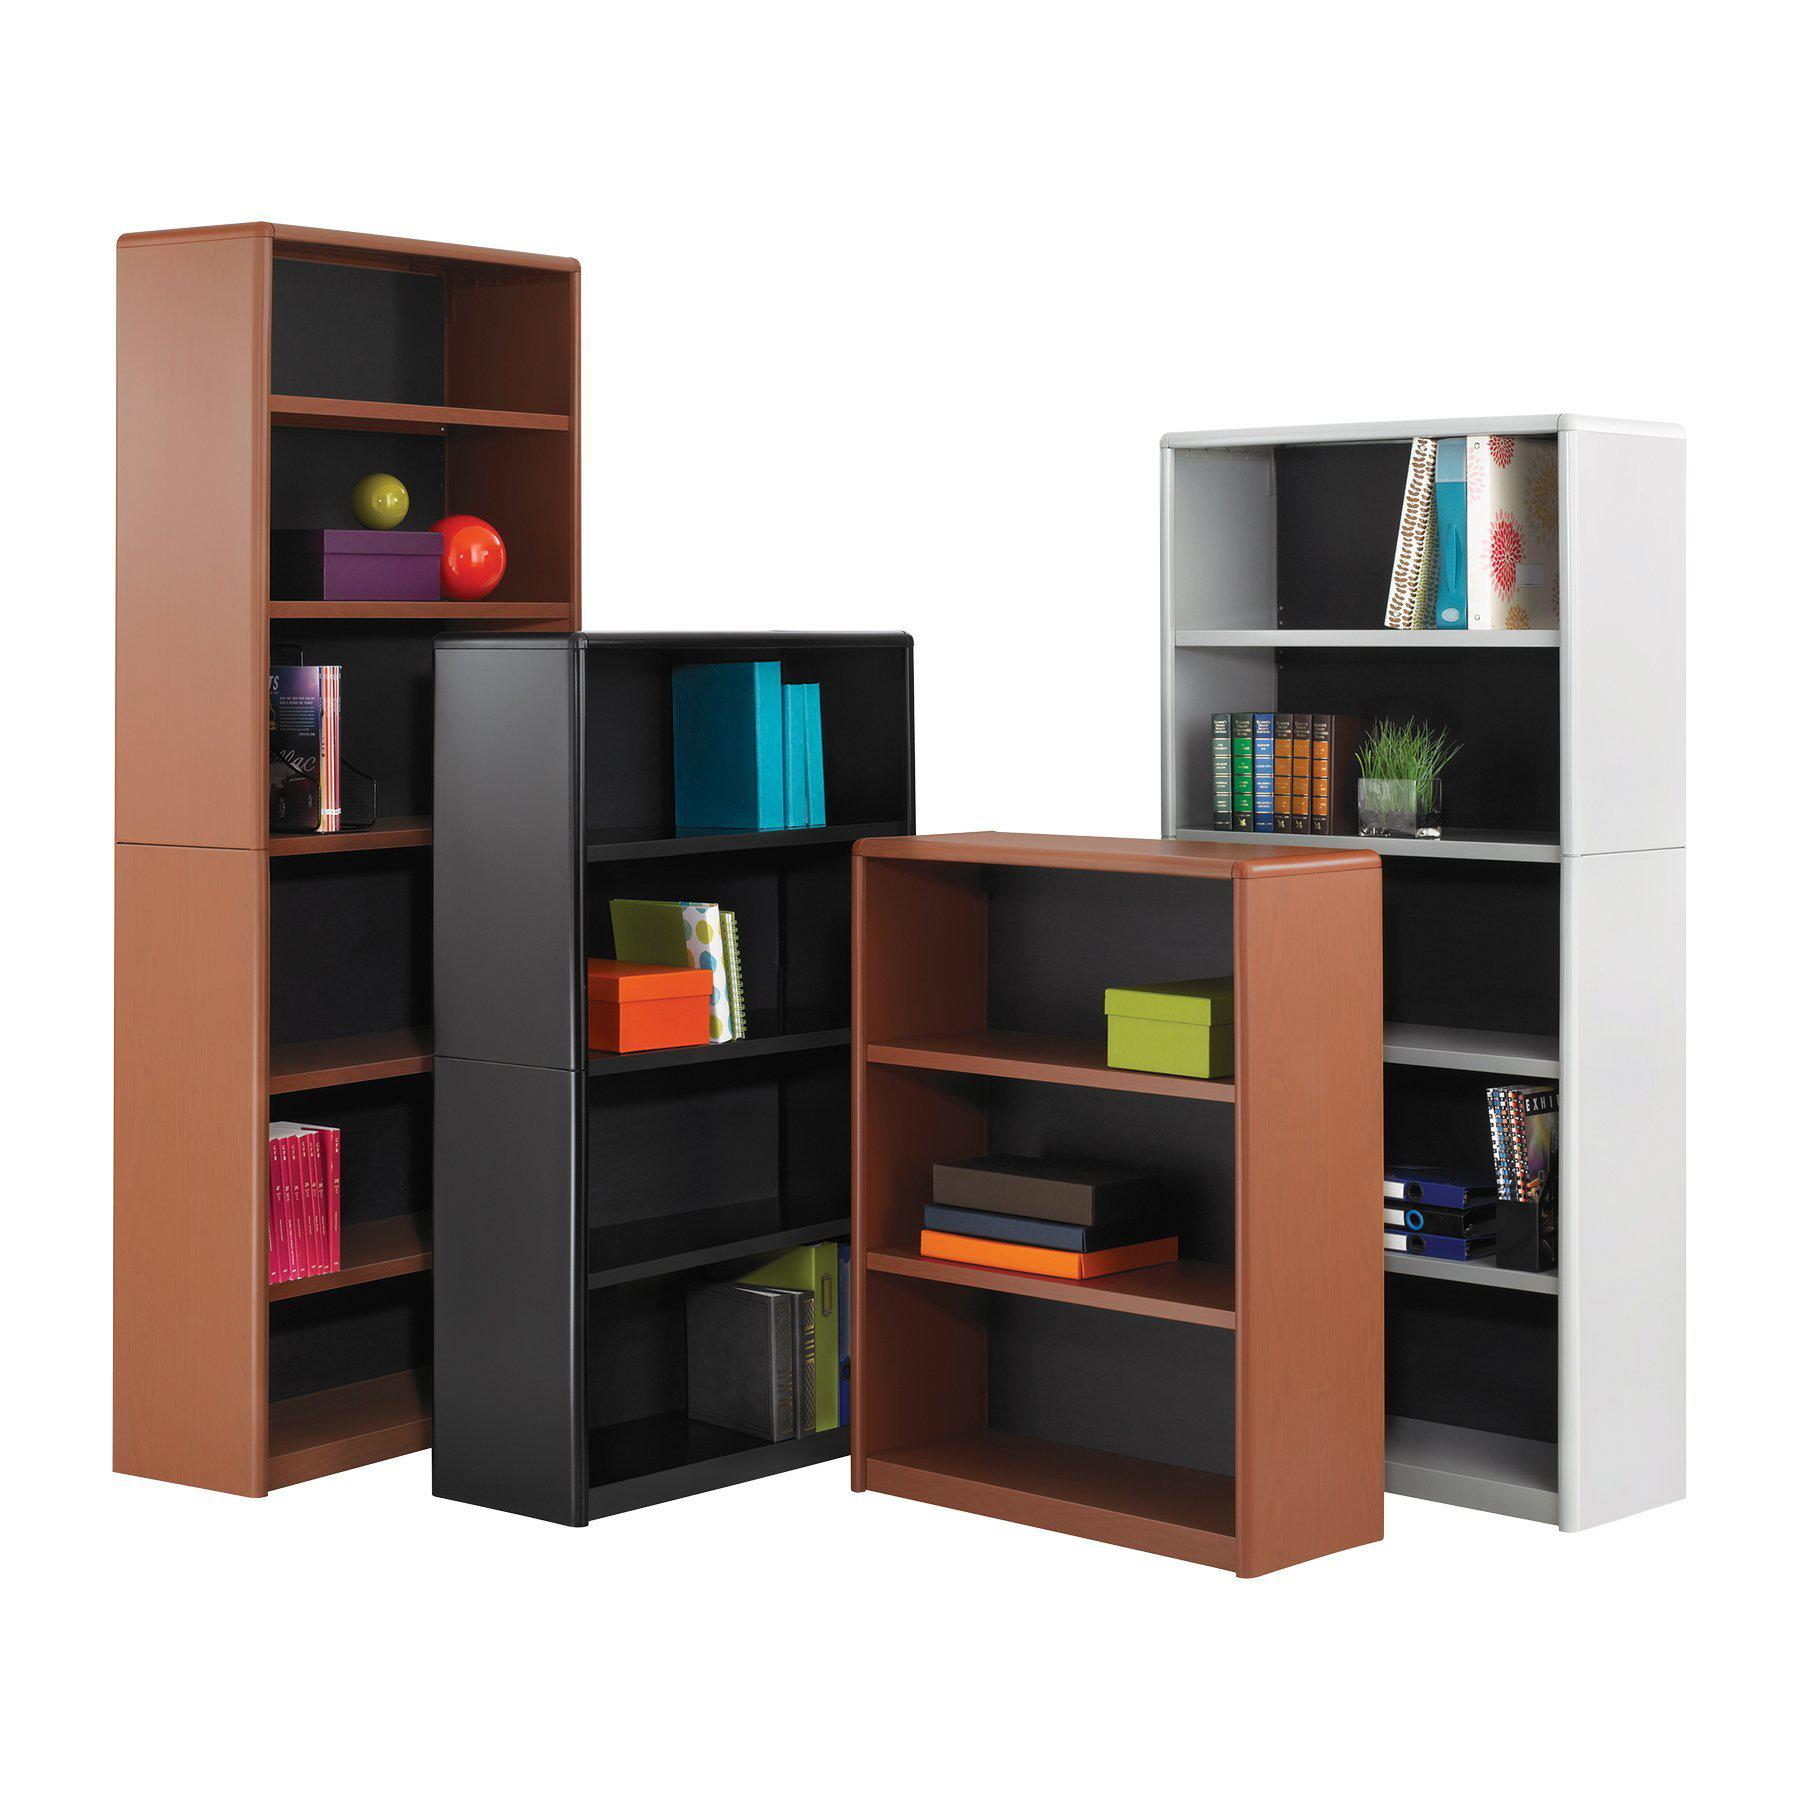 Safco 6-Shelf ValueMate® Economy Bookcase,